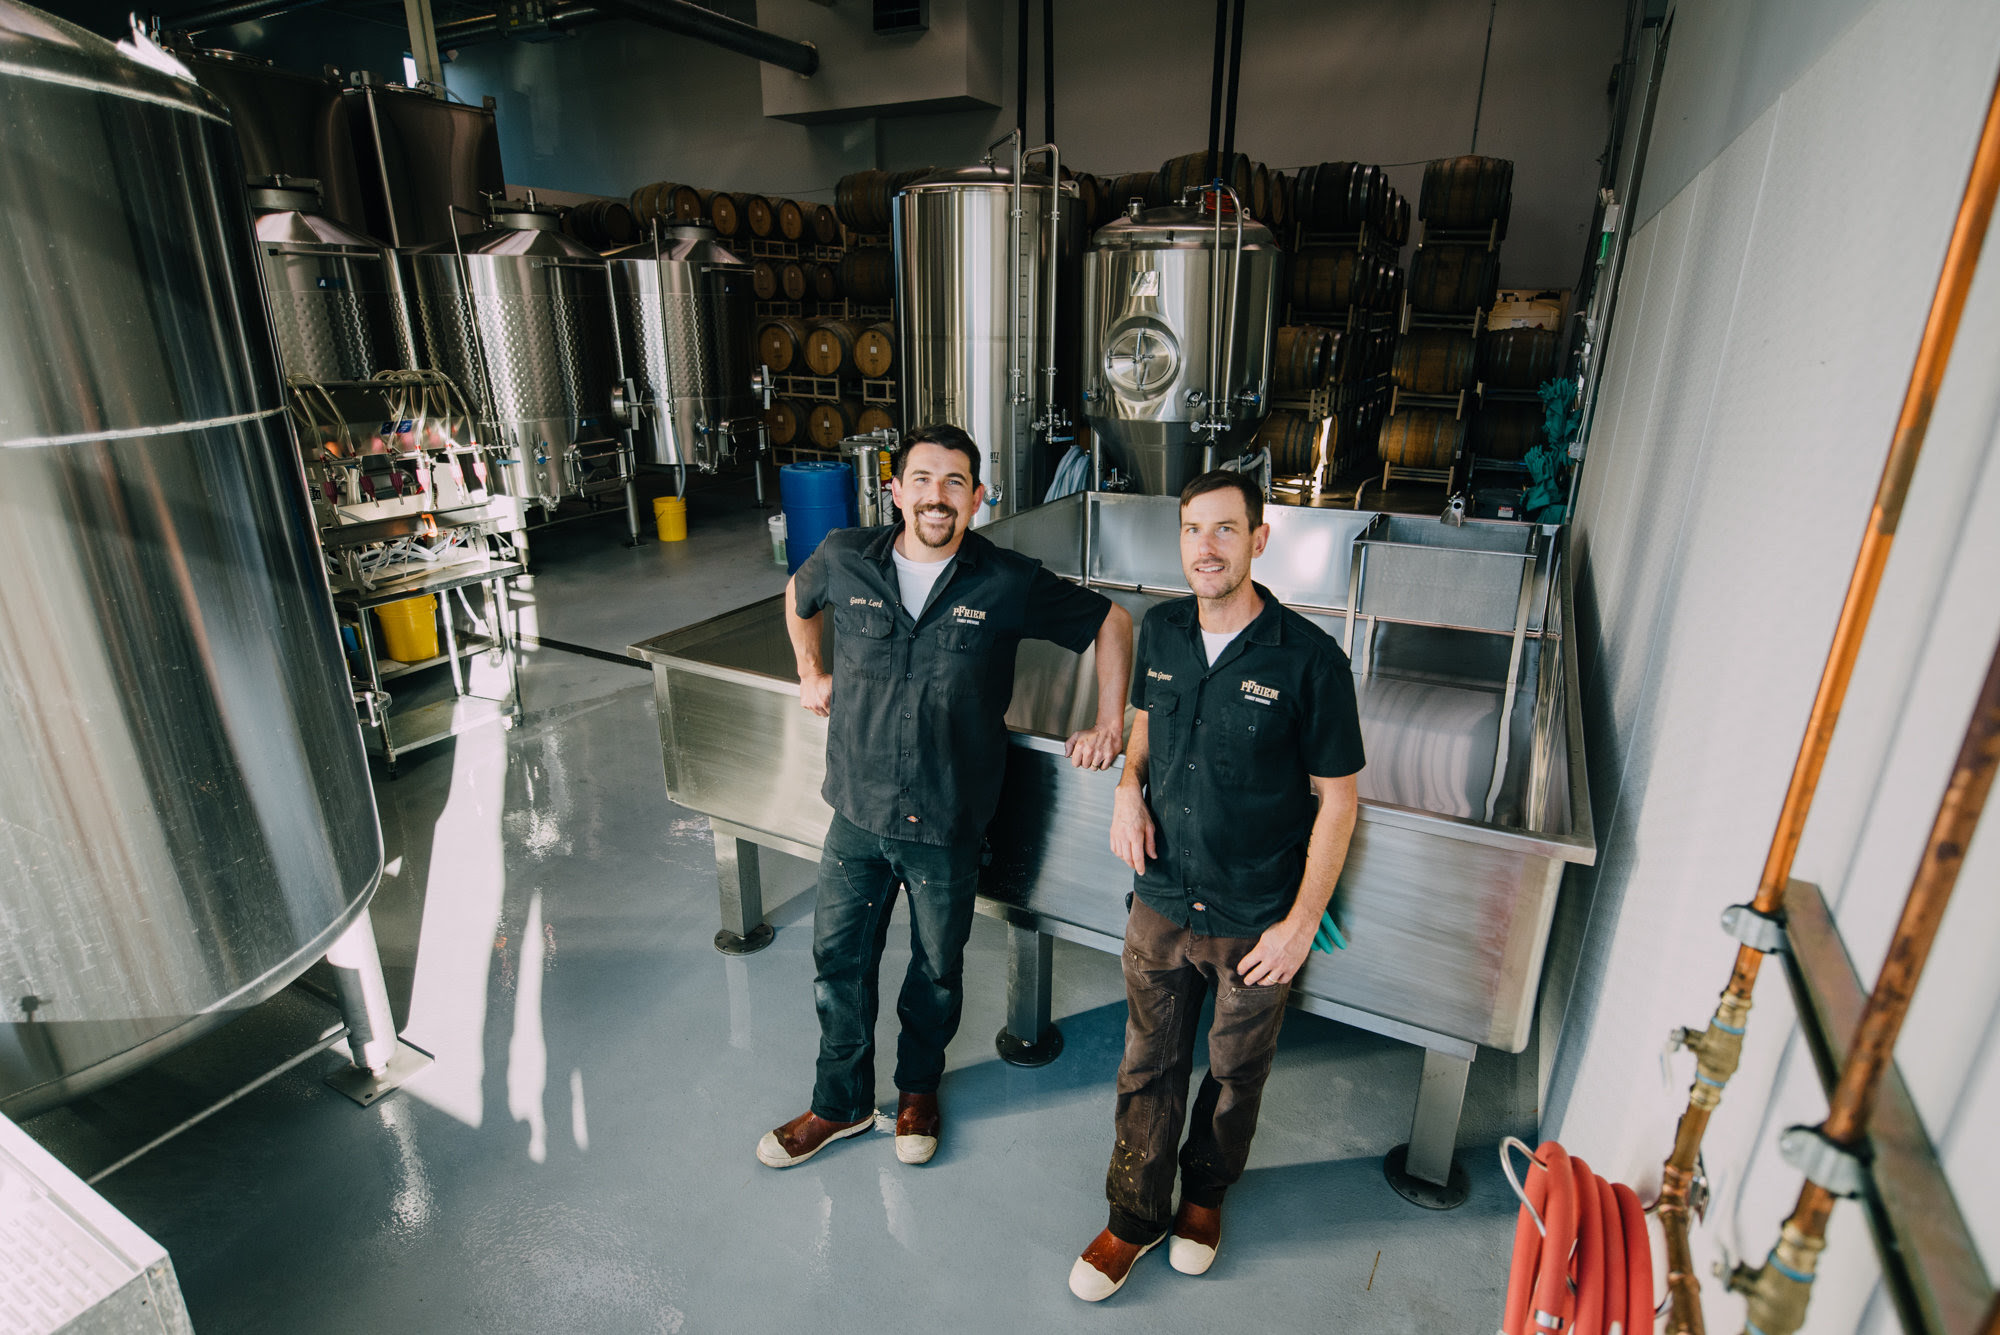 Gavin Lord and Sean Grover pose in front of pFriem's new coolship. (image courtesy of pFriem Family Brewers)